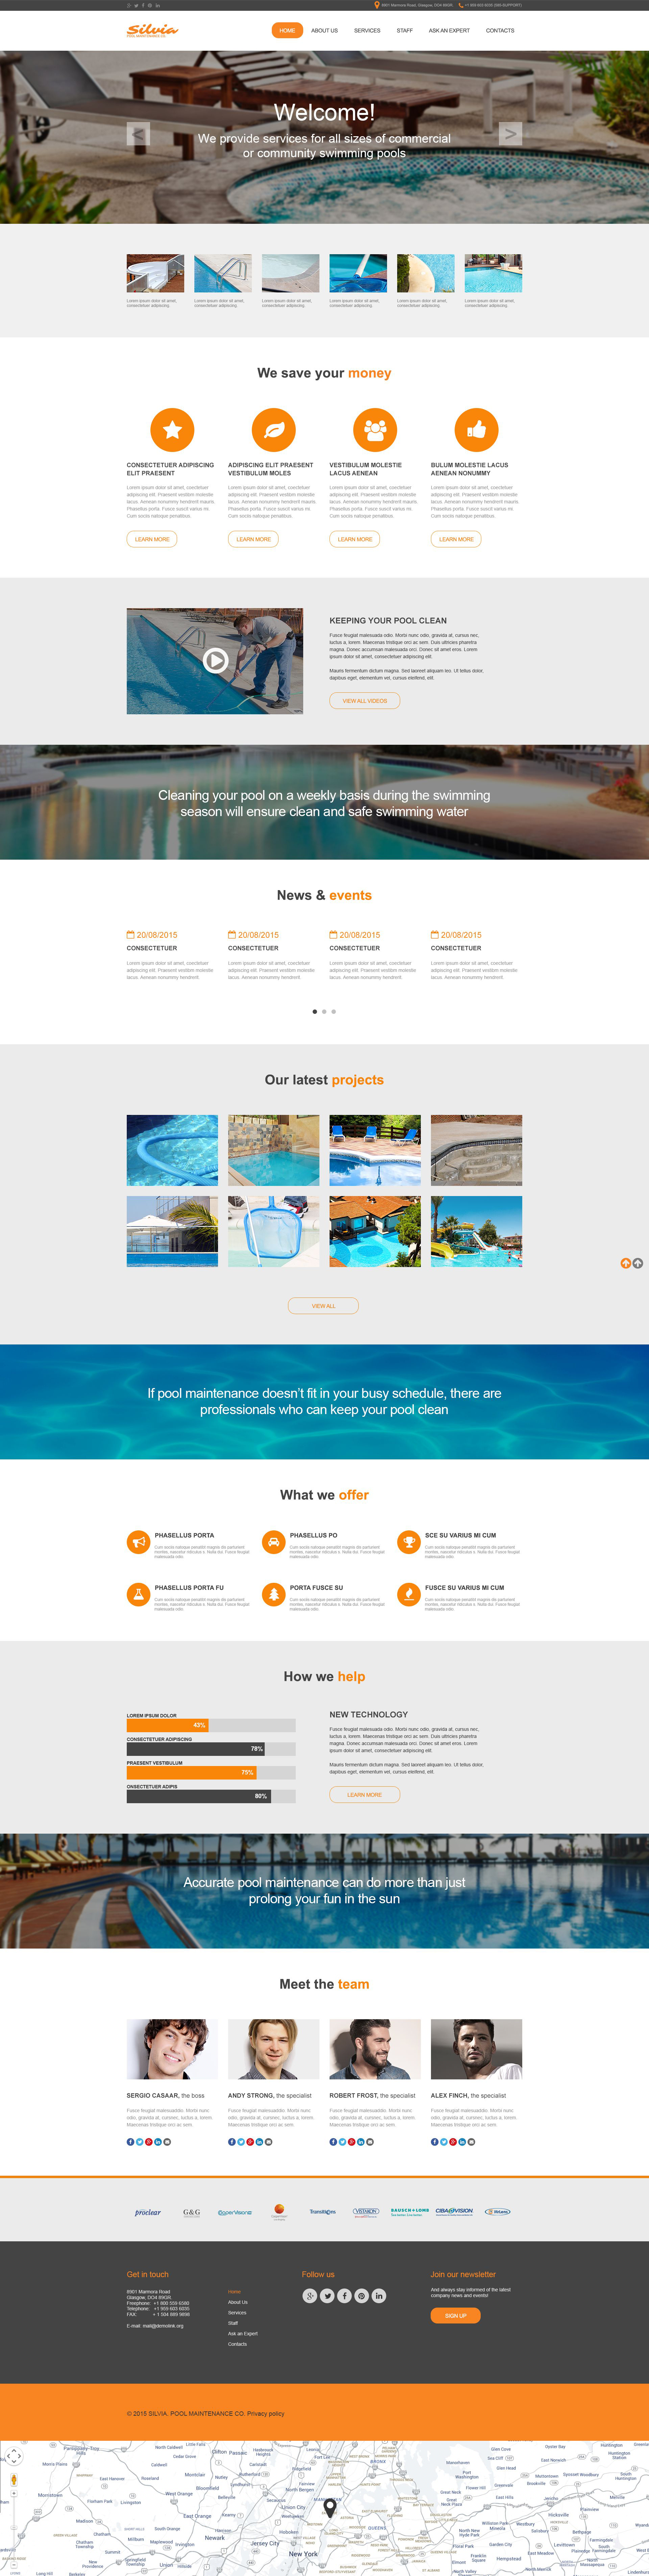 The Silvia Pool Company Muse Templates Design 53794, one of the best Muse templates of its kind (most popular, maintenance services), also known as silvia pool company Muse template, maintenance Muse template, services Muse template, estimate Muse template, cleaner Muse template, dirty Muse template, testimonials Muse template, professional Muse template, workteam Muse template, tips Muse template, client Muse template, price Muse template, tidying up Muse template, sponge Muse template, decoration Muse template, preventative Muse template, plumbing Muse template, repair Muse template, resurfacing Muse template, painting Muse template, fiberglass Muse template, plaster Muse template, deck Muse template, drainage Muse template, renovation and related with silvia pool company, maintenance, services, estimate, cleaner, dirty, testimonials, professional, workteam, tips, client, price, tidying up, sponge, decoration, preventative, plumbing, repair, resurfacing, painting, fiberglass, plaster, deck, drainage, renovation, etc.